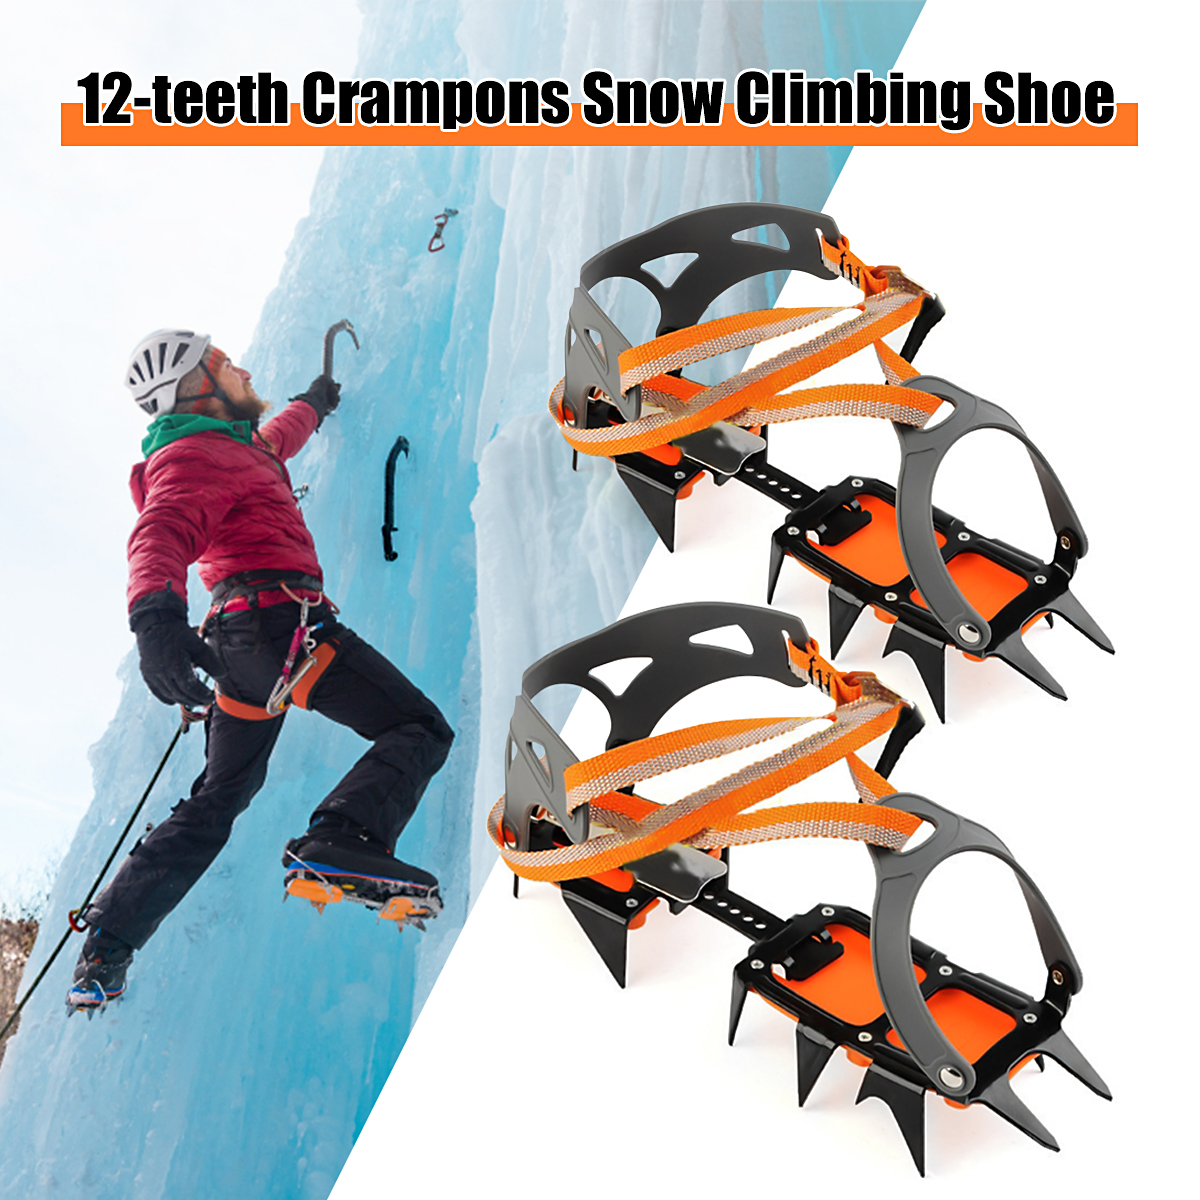 New arrival 1 Pair Ice Crampons Non-Slip Snow Shoe Spikes Grips Cleats crampons Winter Climbing Hiking Anti Slip Safety Tool цены